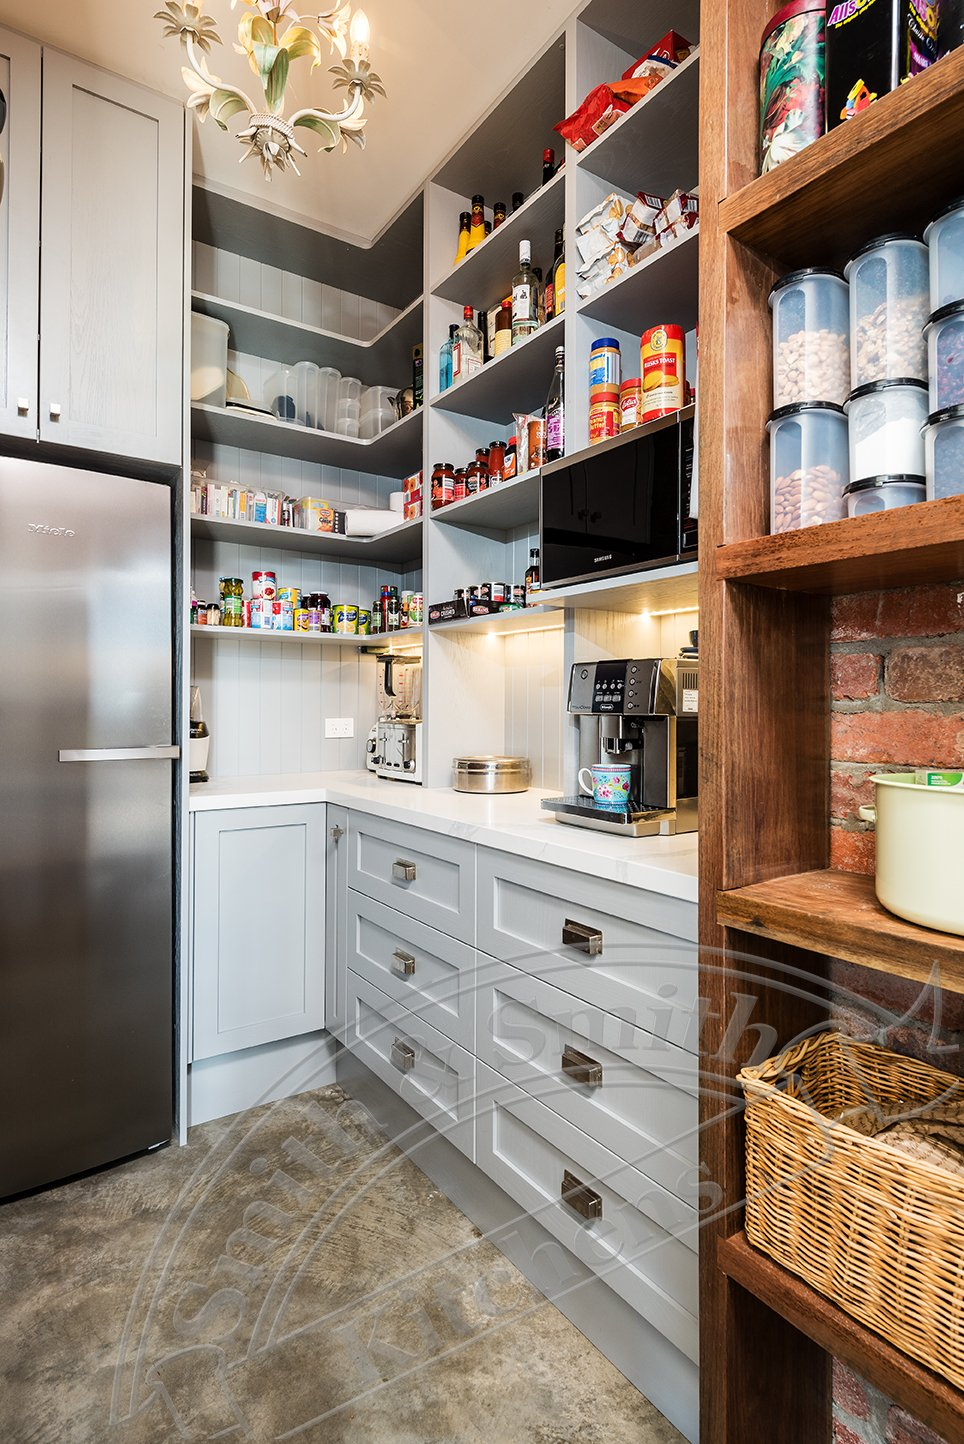 Silvan farmhouse butler's pantry by Smith & Smith, Photos - Tim Turner